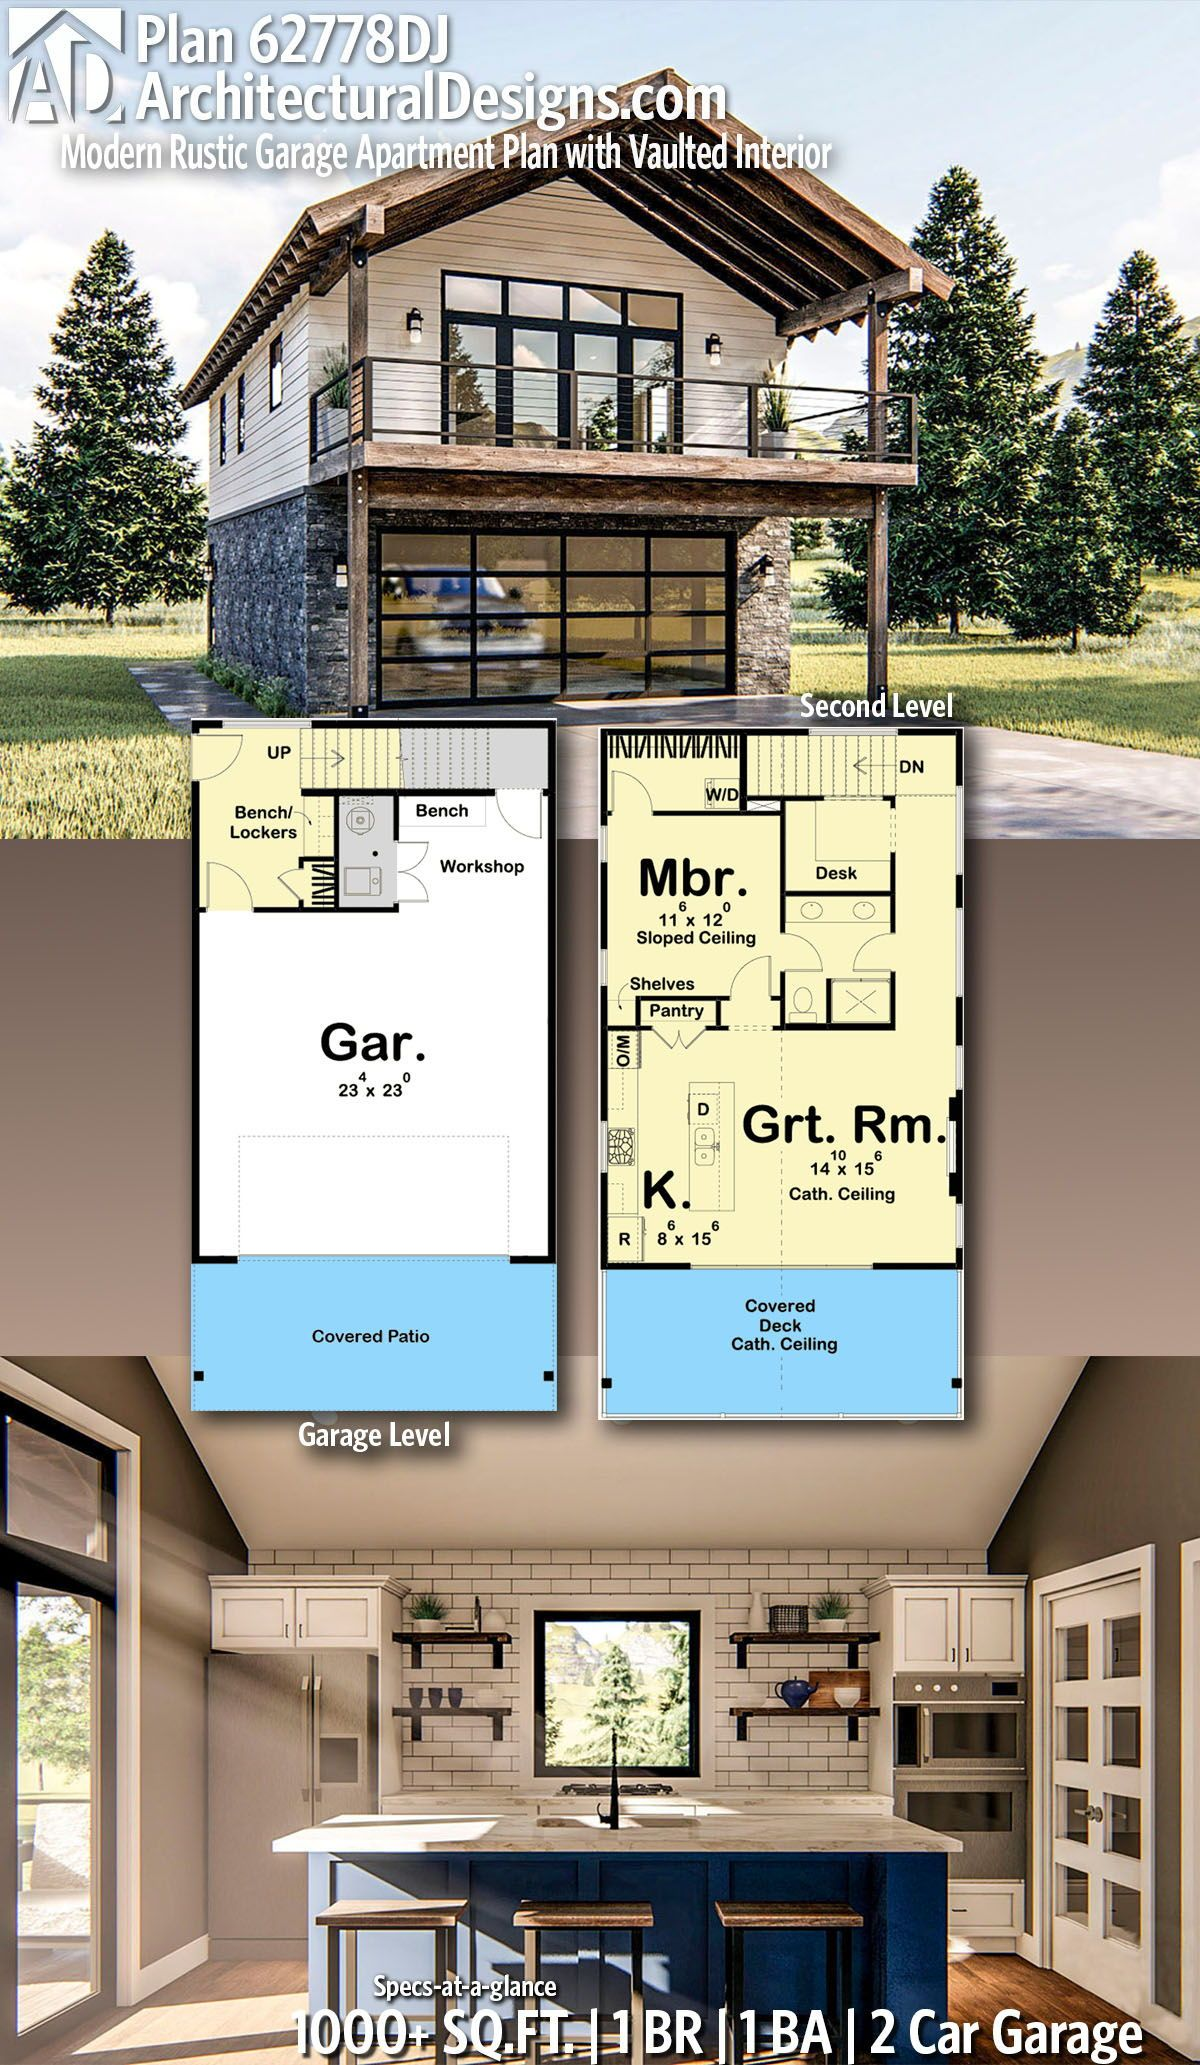 Plan 62778dj Modern Rustic Garage Apartment Plan With Vaulted Interior Carriage House Plans Garage Apartment Plan Tiny House Plans